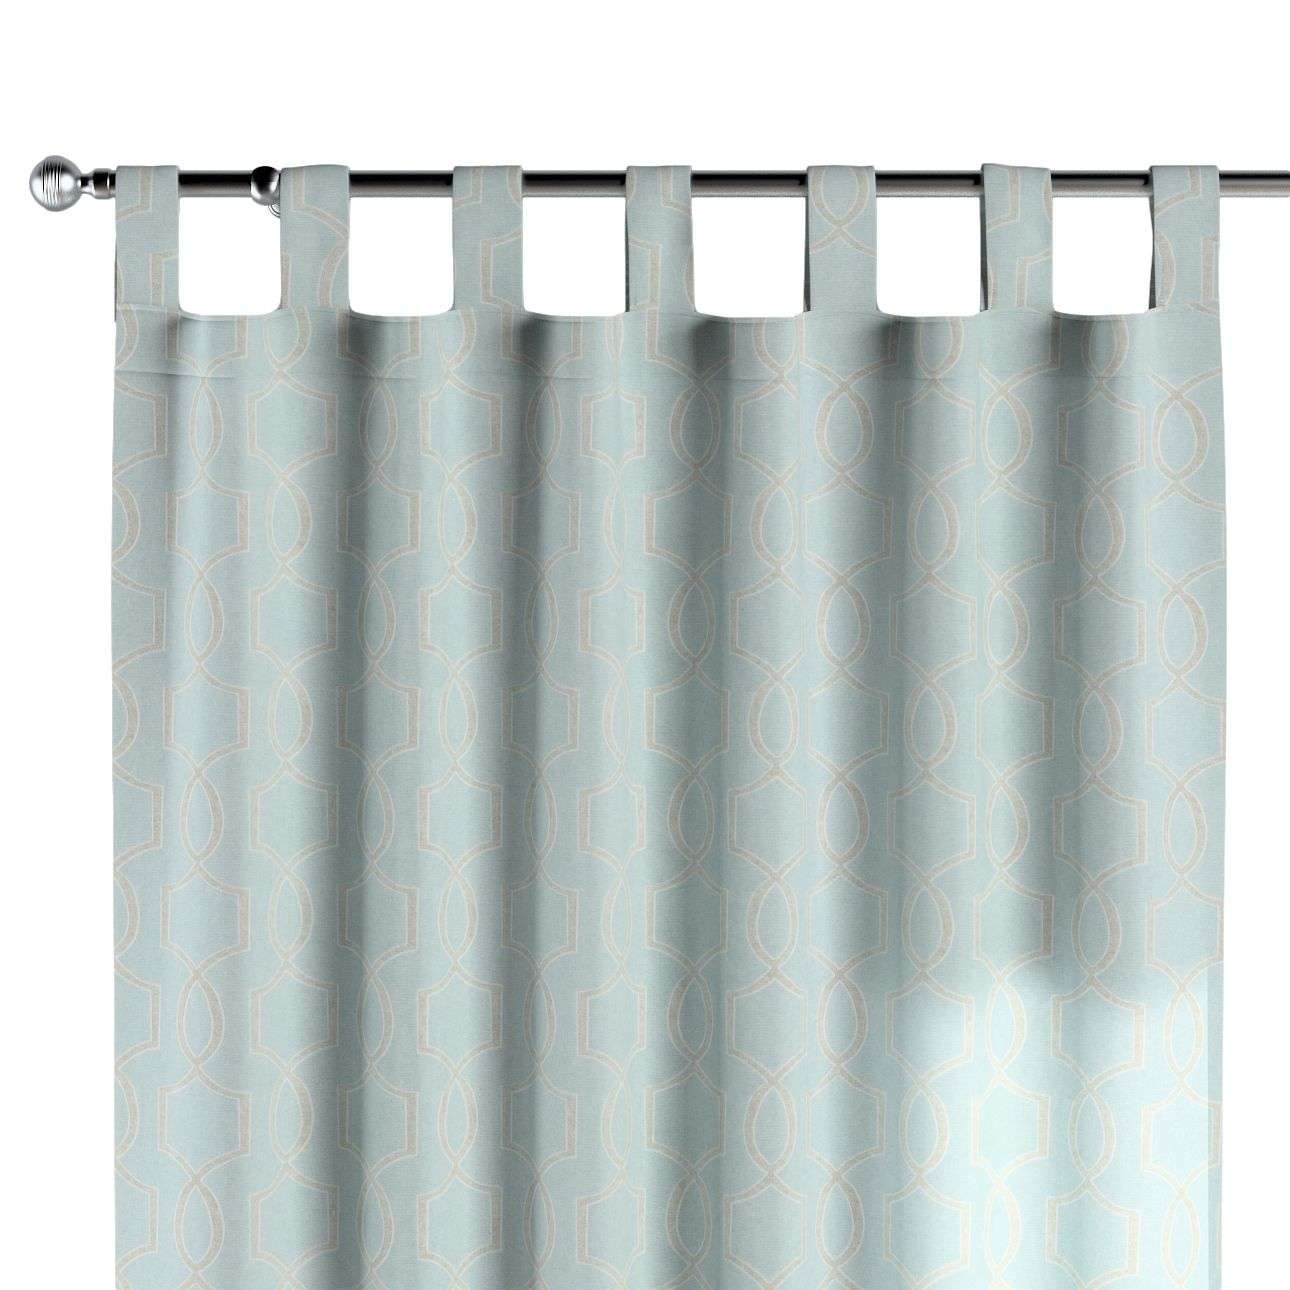 Tab top curtains in collection Comics/Geometrical, fabric: 141-24